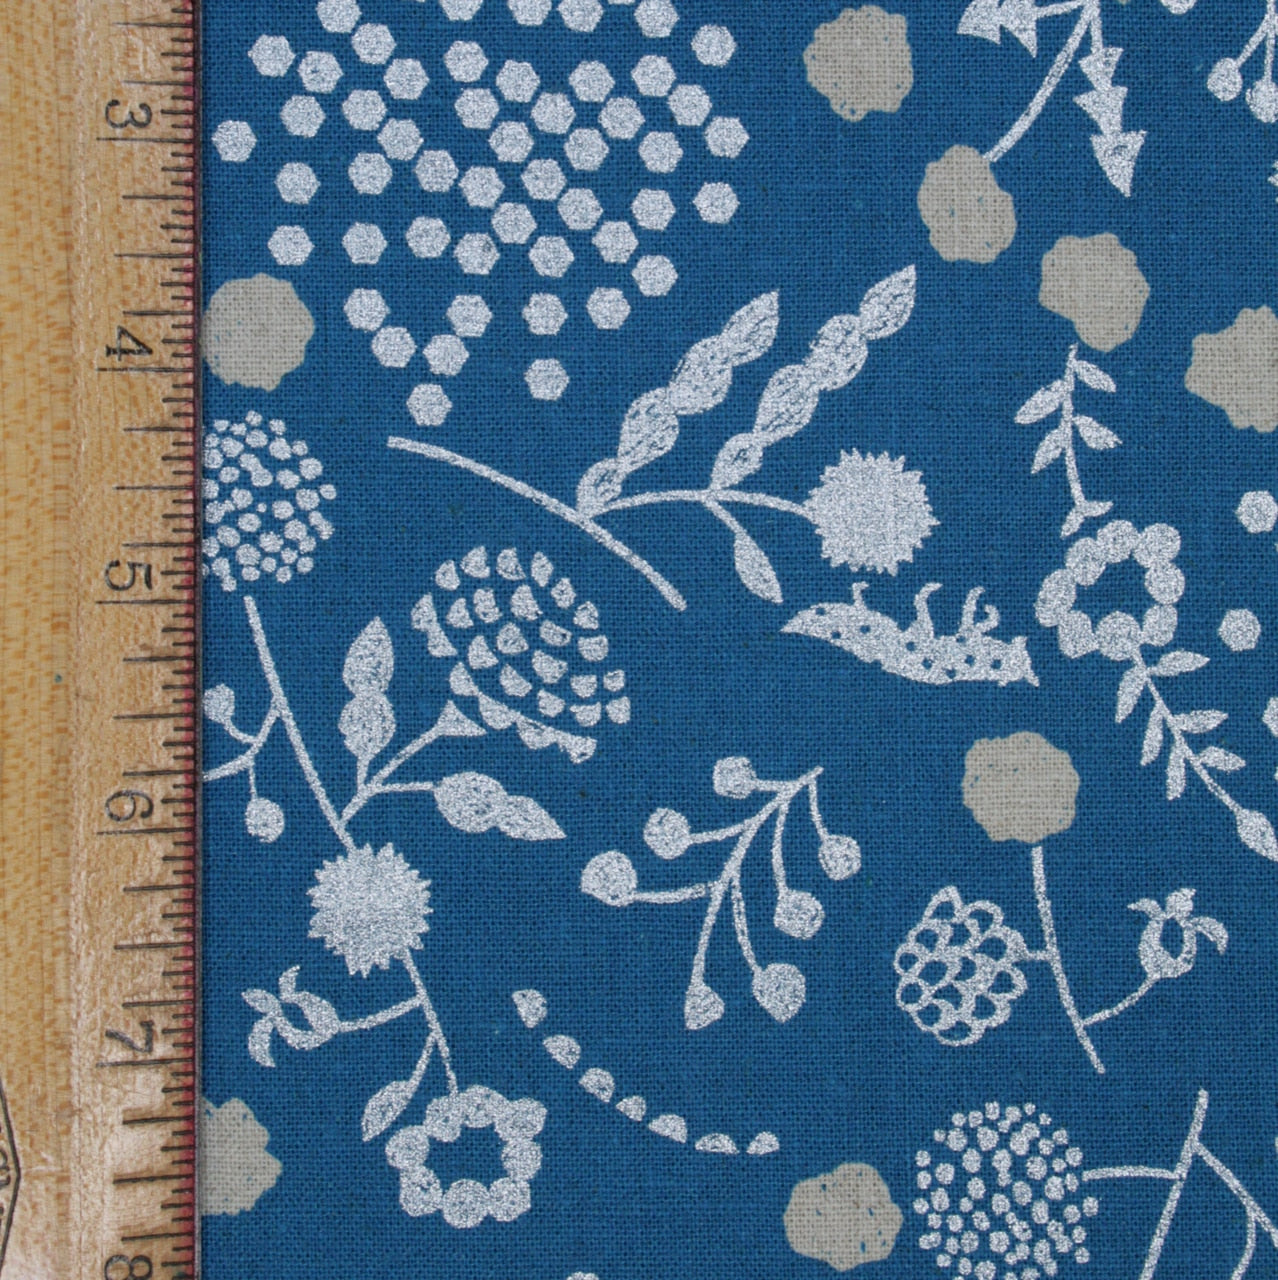 Kokka - Echino Sprout Canvas - Floral  on Blue with Silver  - 1/4m